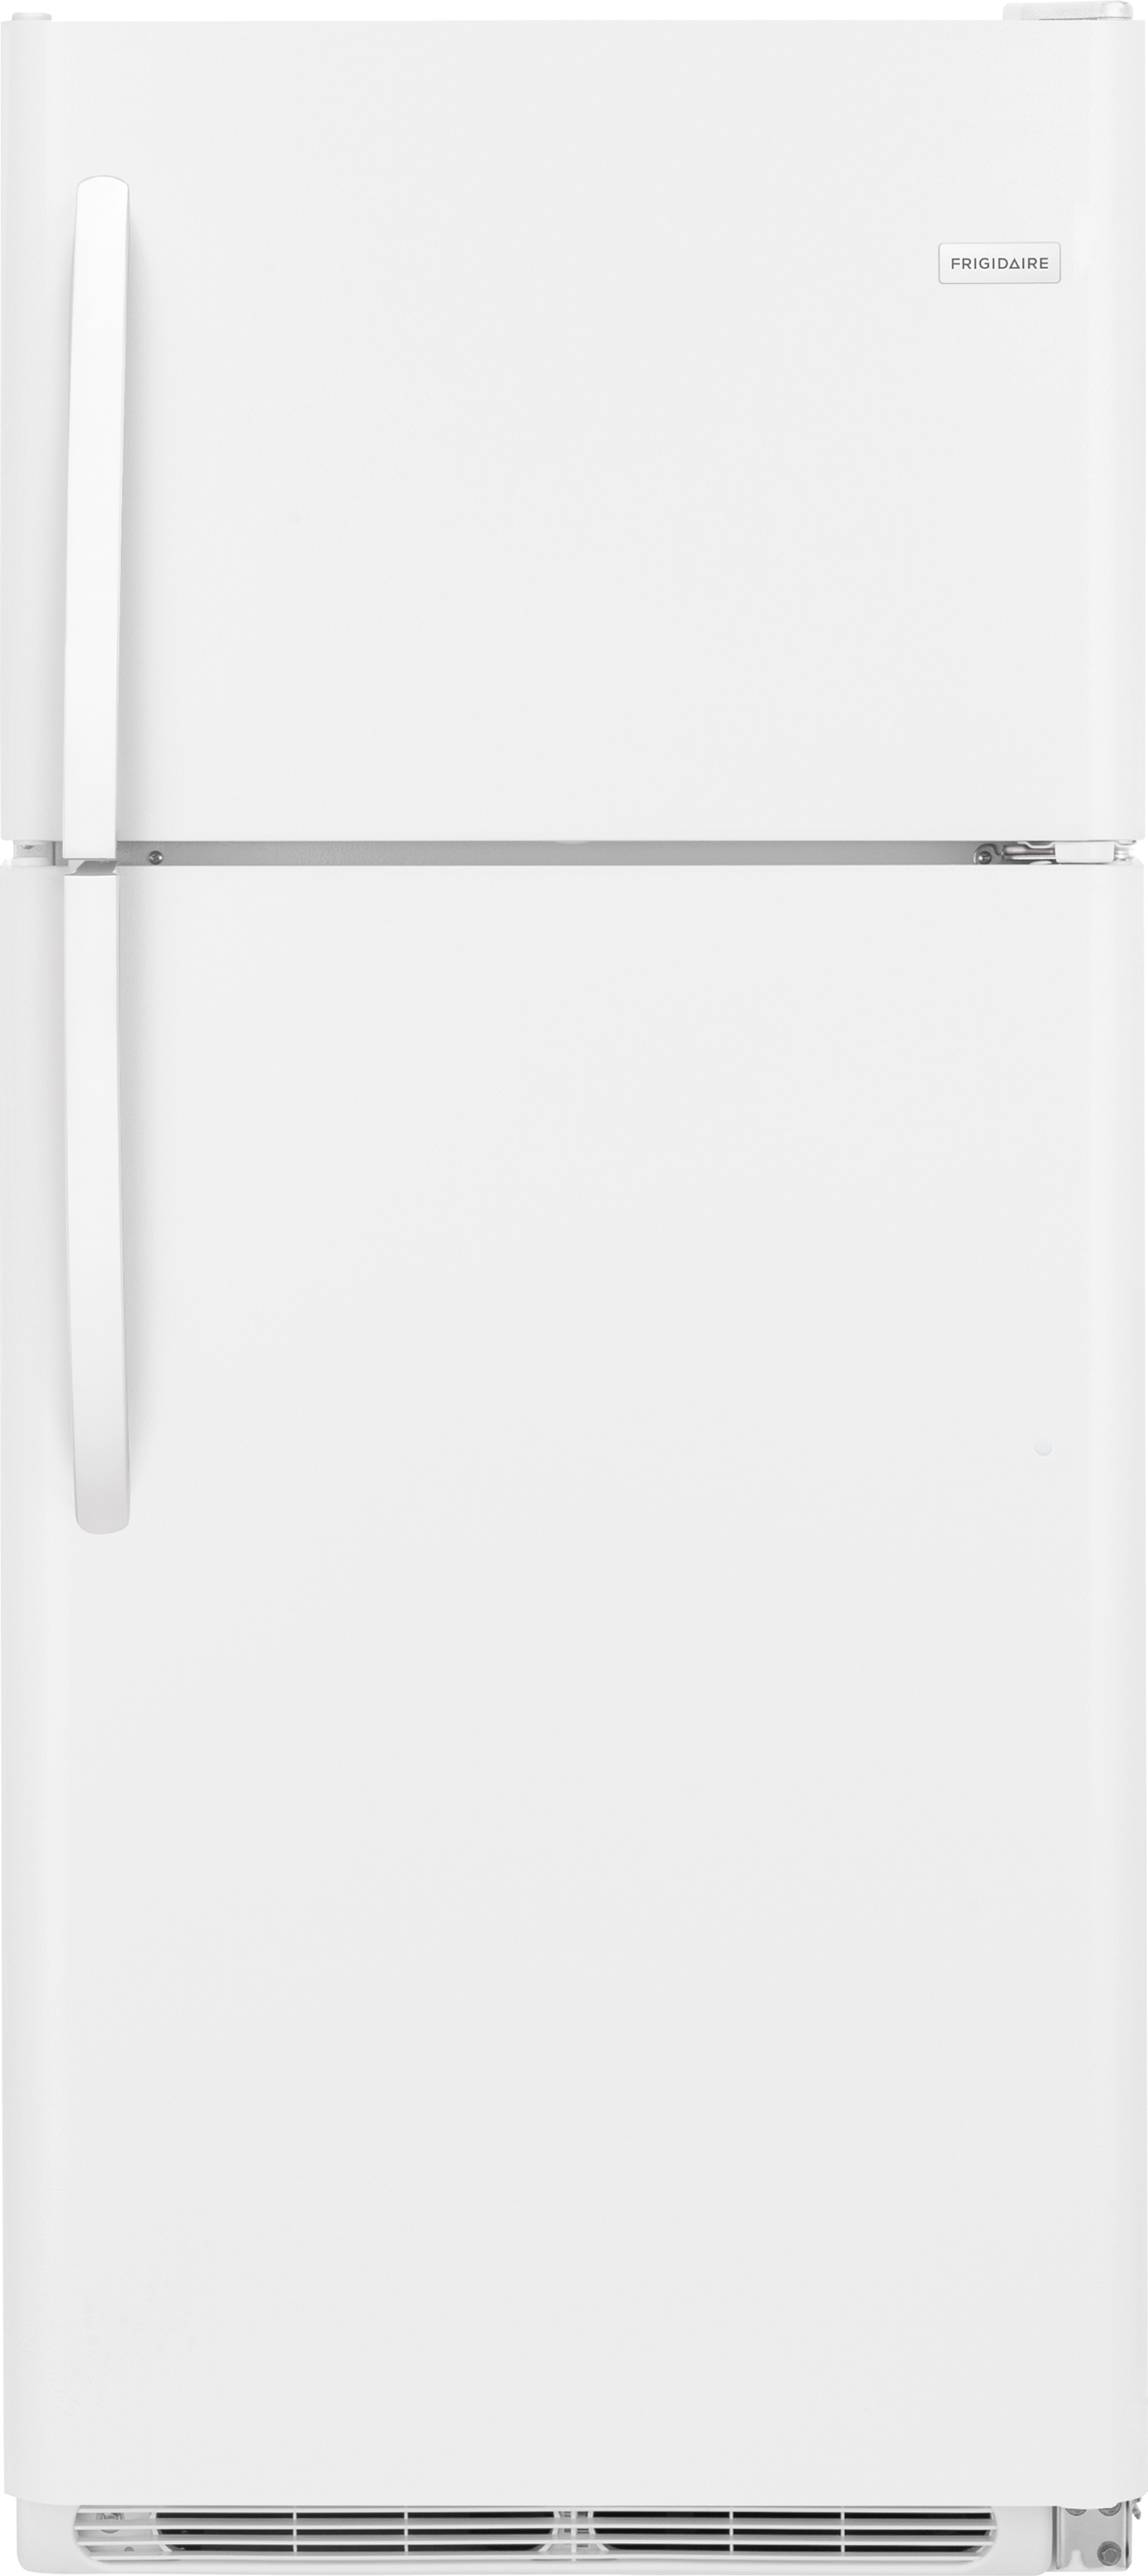 21' Black or White Refrigerator